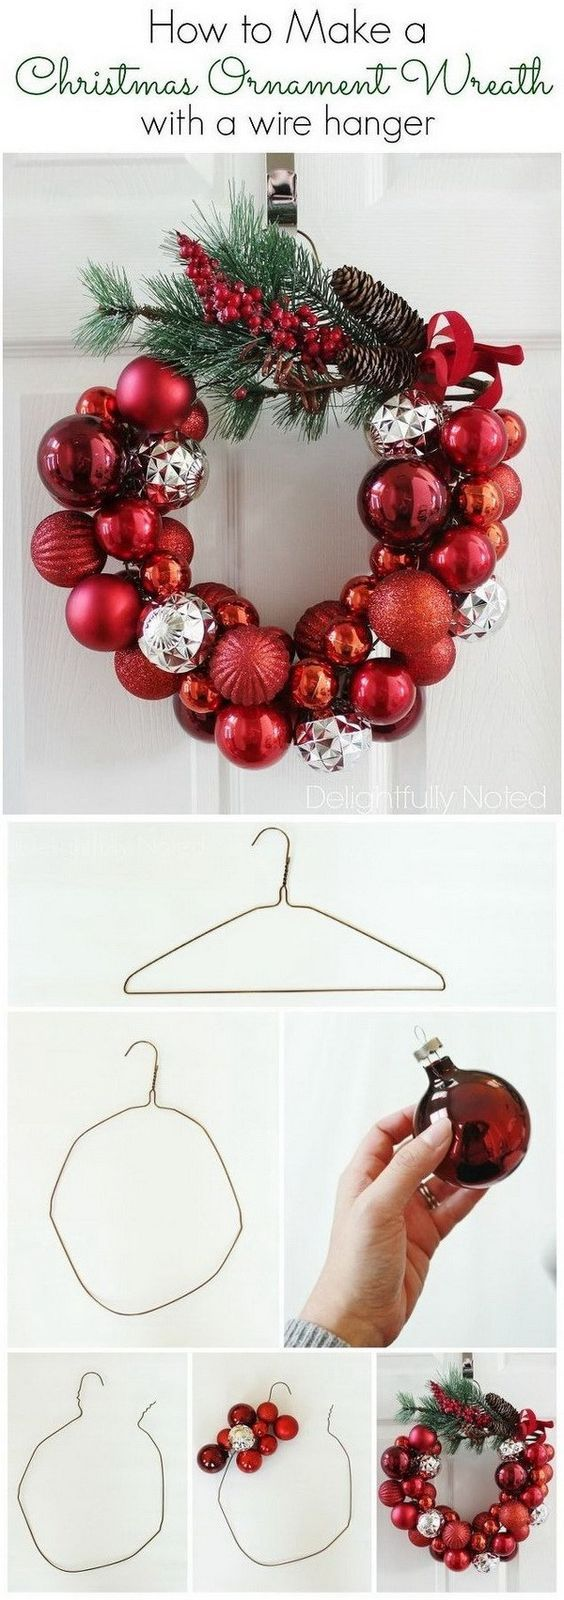 21 Brilliant DIYs for Christmas Wreaths 19